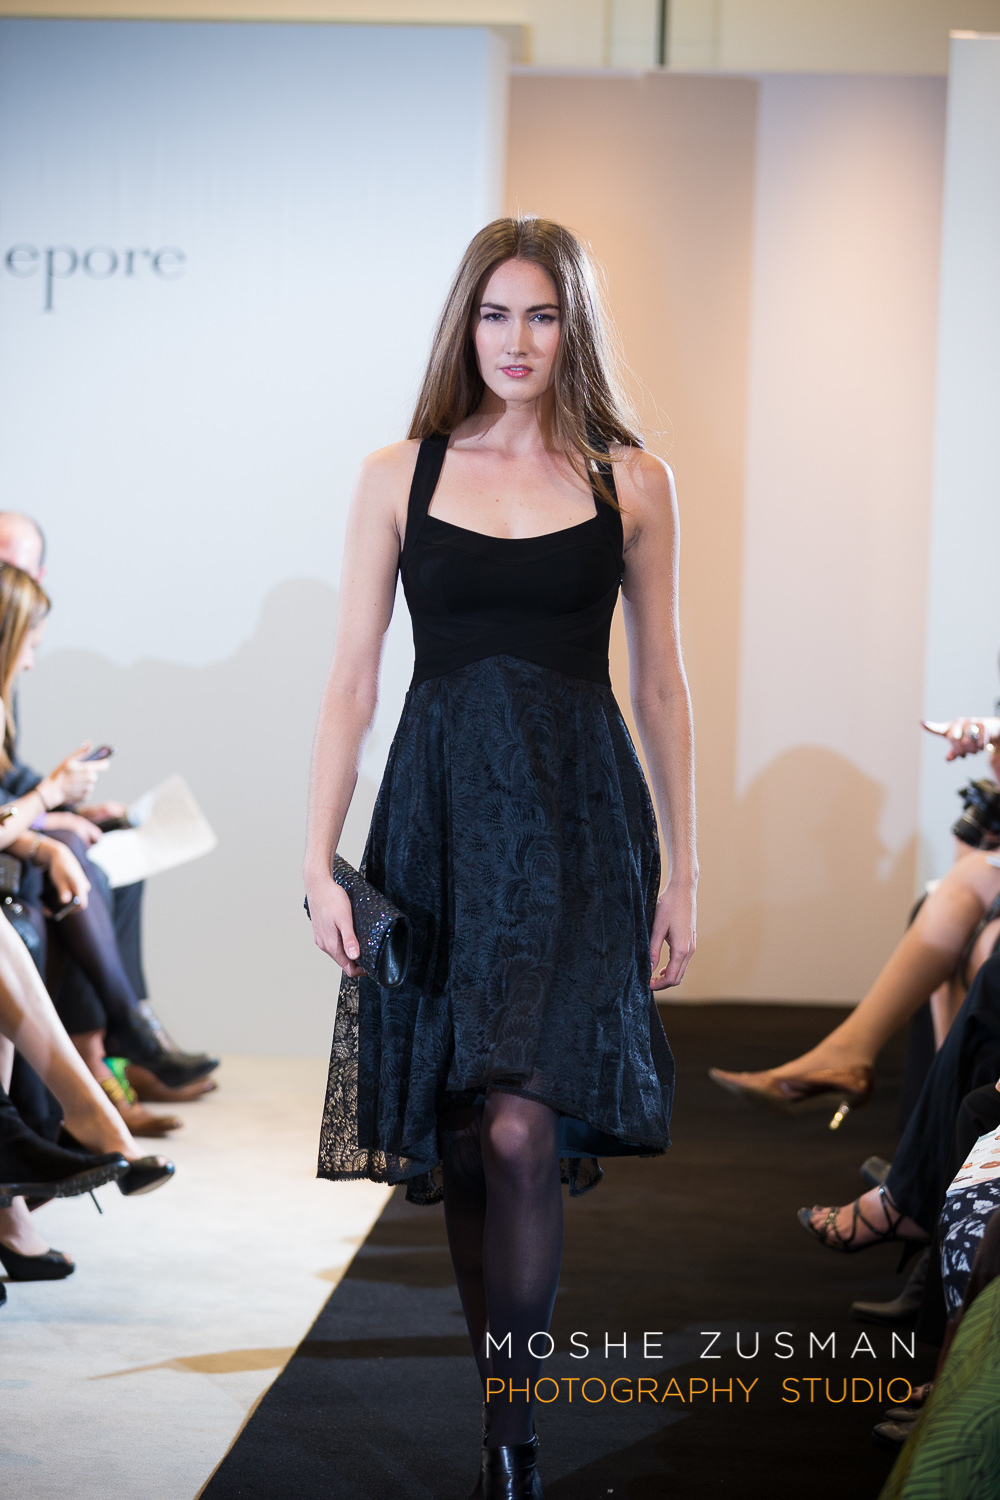 Nanette-Lepore-Saks-Fifth-Avenue-Fashion-Show-Moshe-Zusman-Photography-19.jpg